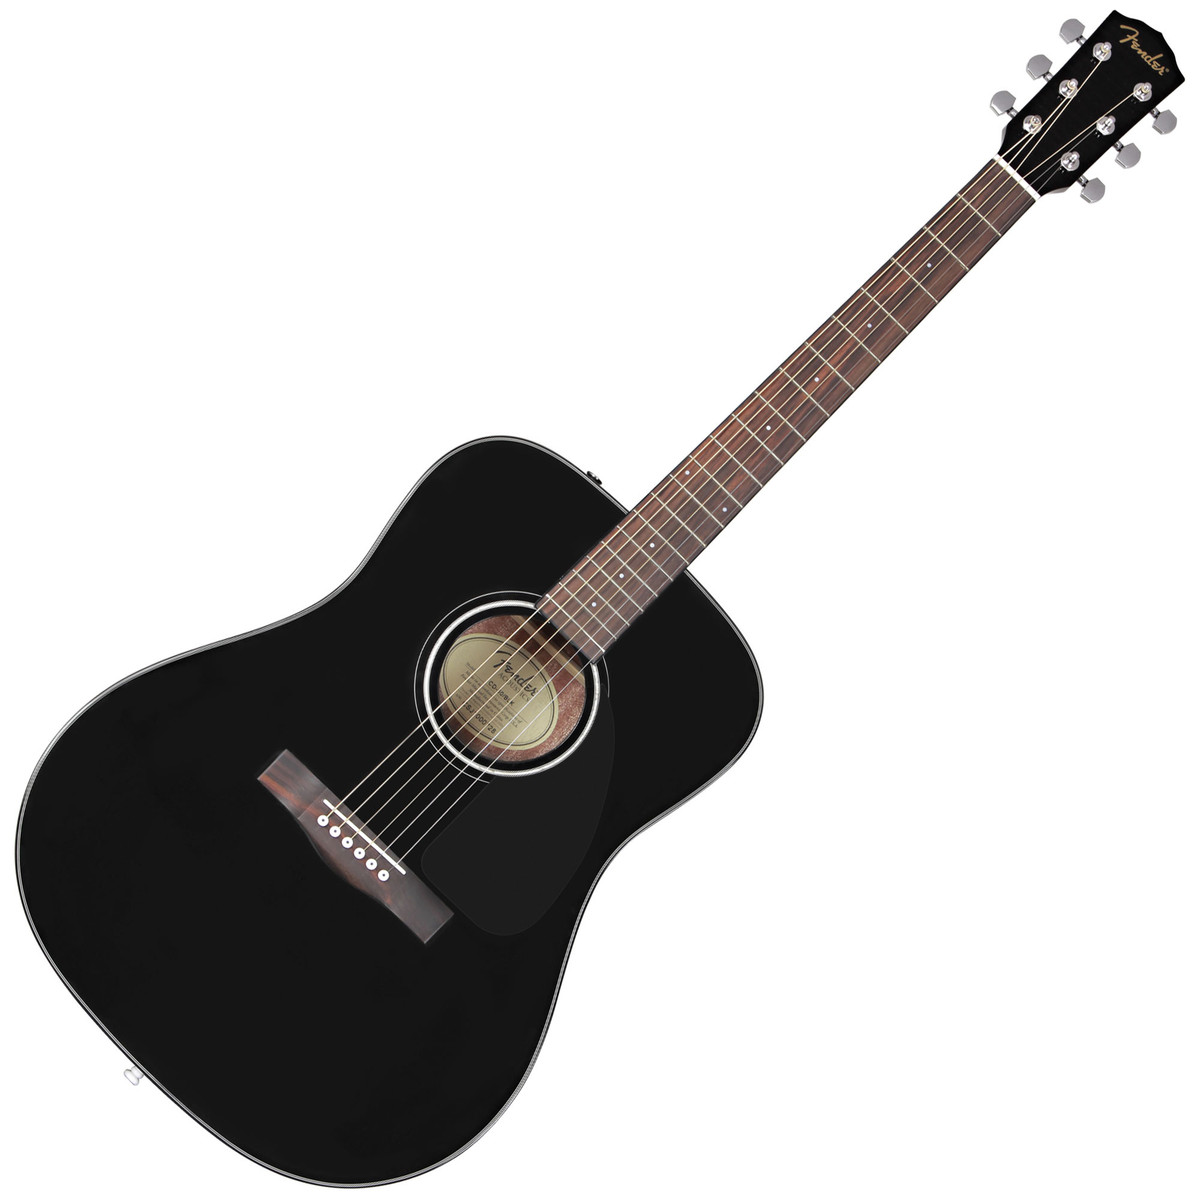 fender cd 60 acoustic guitar black b stock at gear4music. Black Bedroom Furniture Sets. Home Design Ideas